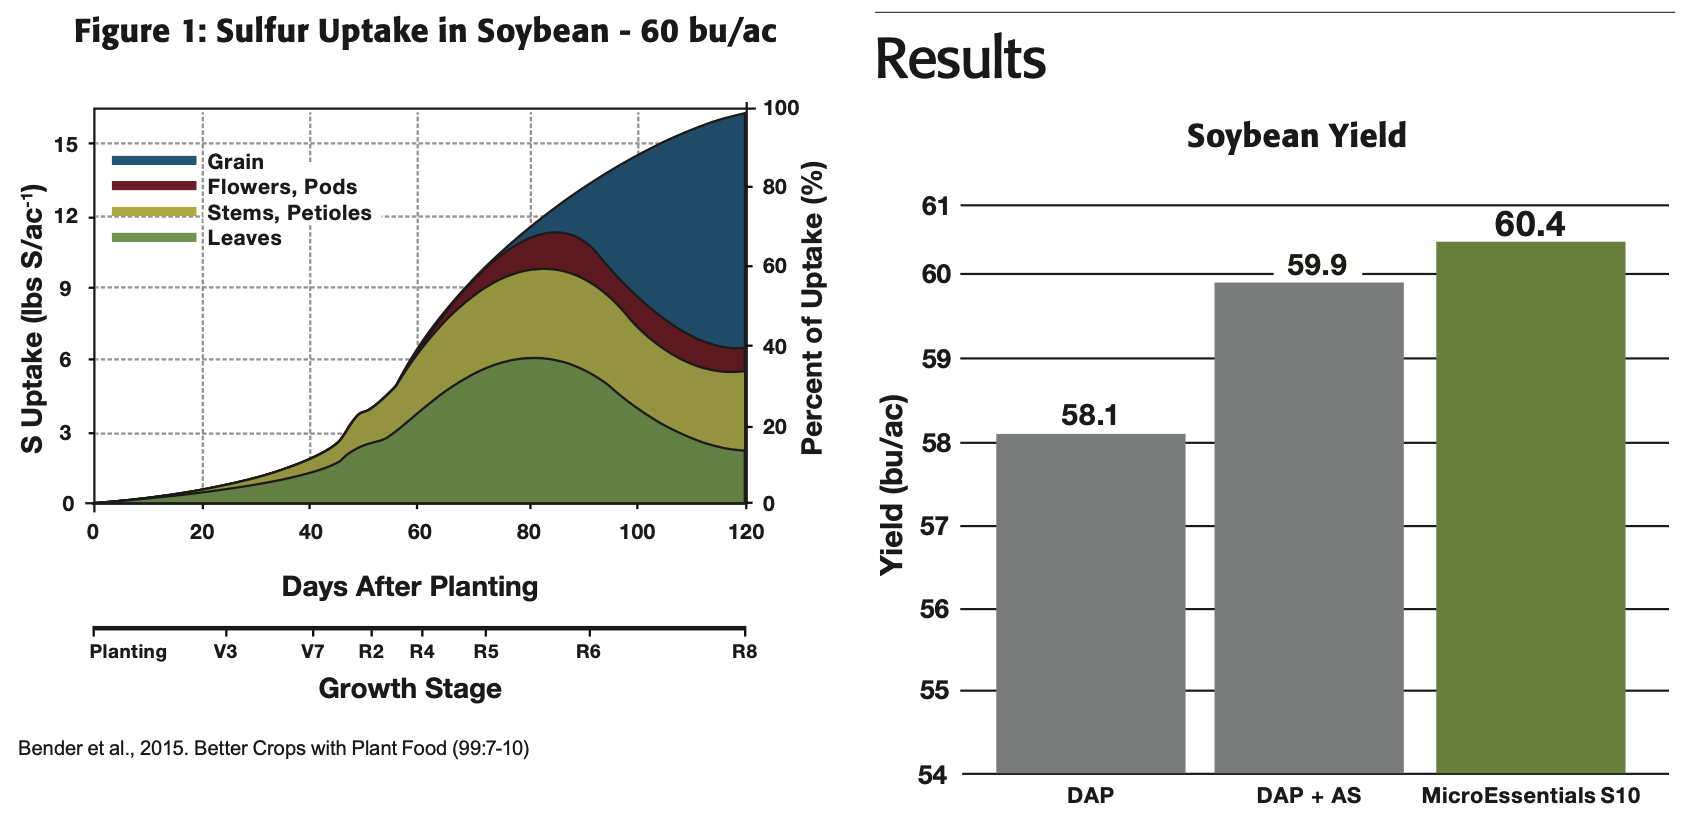 Soybean Yield Results